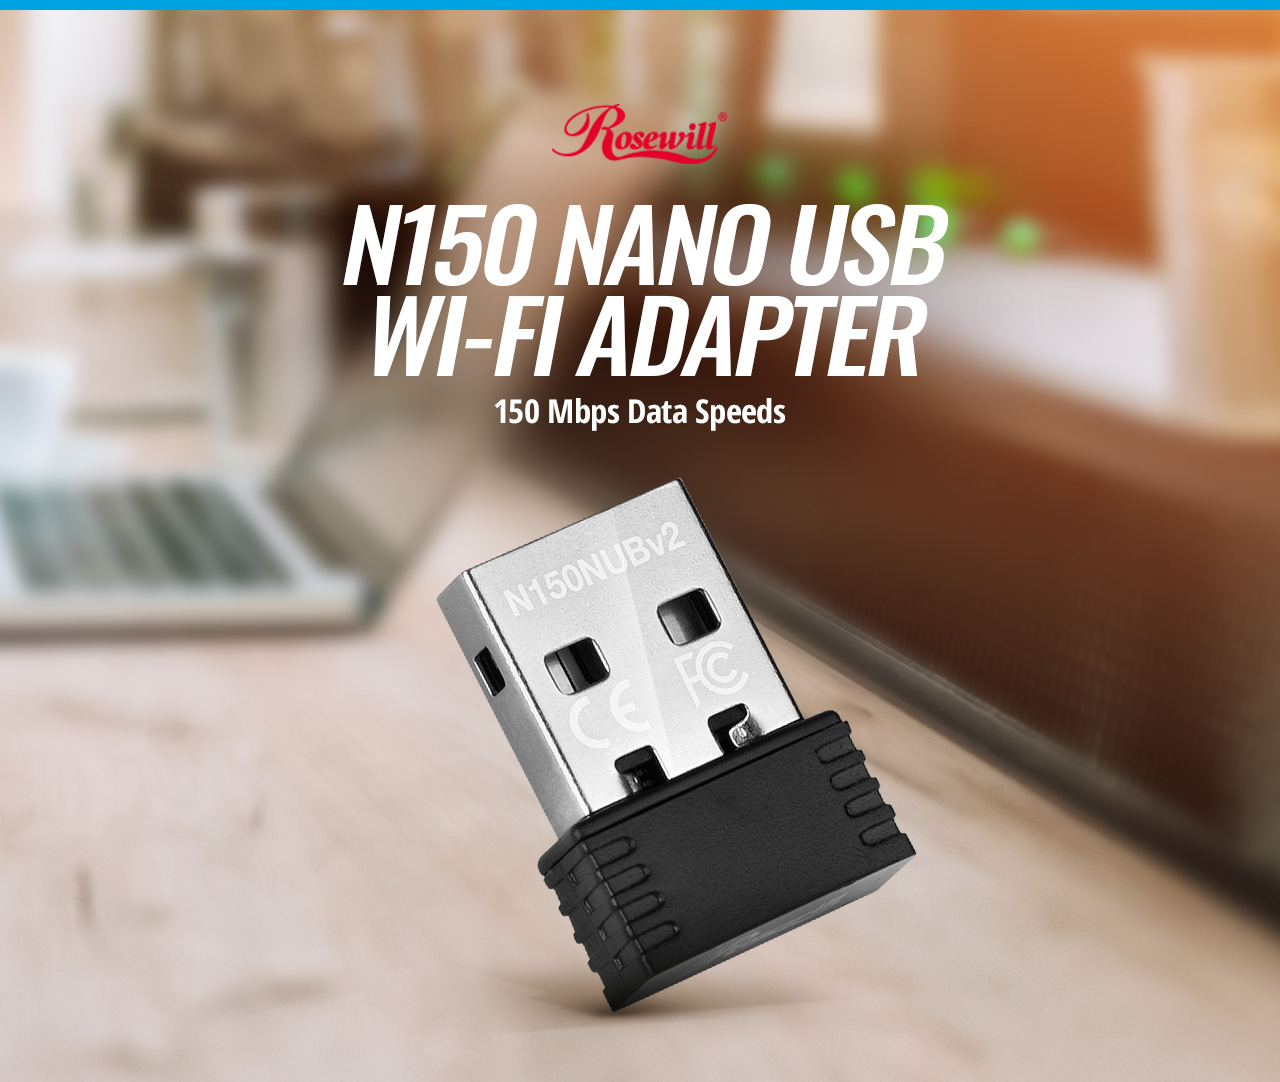 Rosewill RNX-N150NUBv2 NANO USB WI-FI ADAPTER 150 Megabits per second Data Speed tilted up to the right on a kitchen counter in front of a laptop